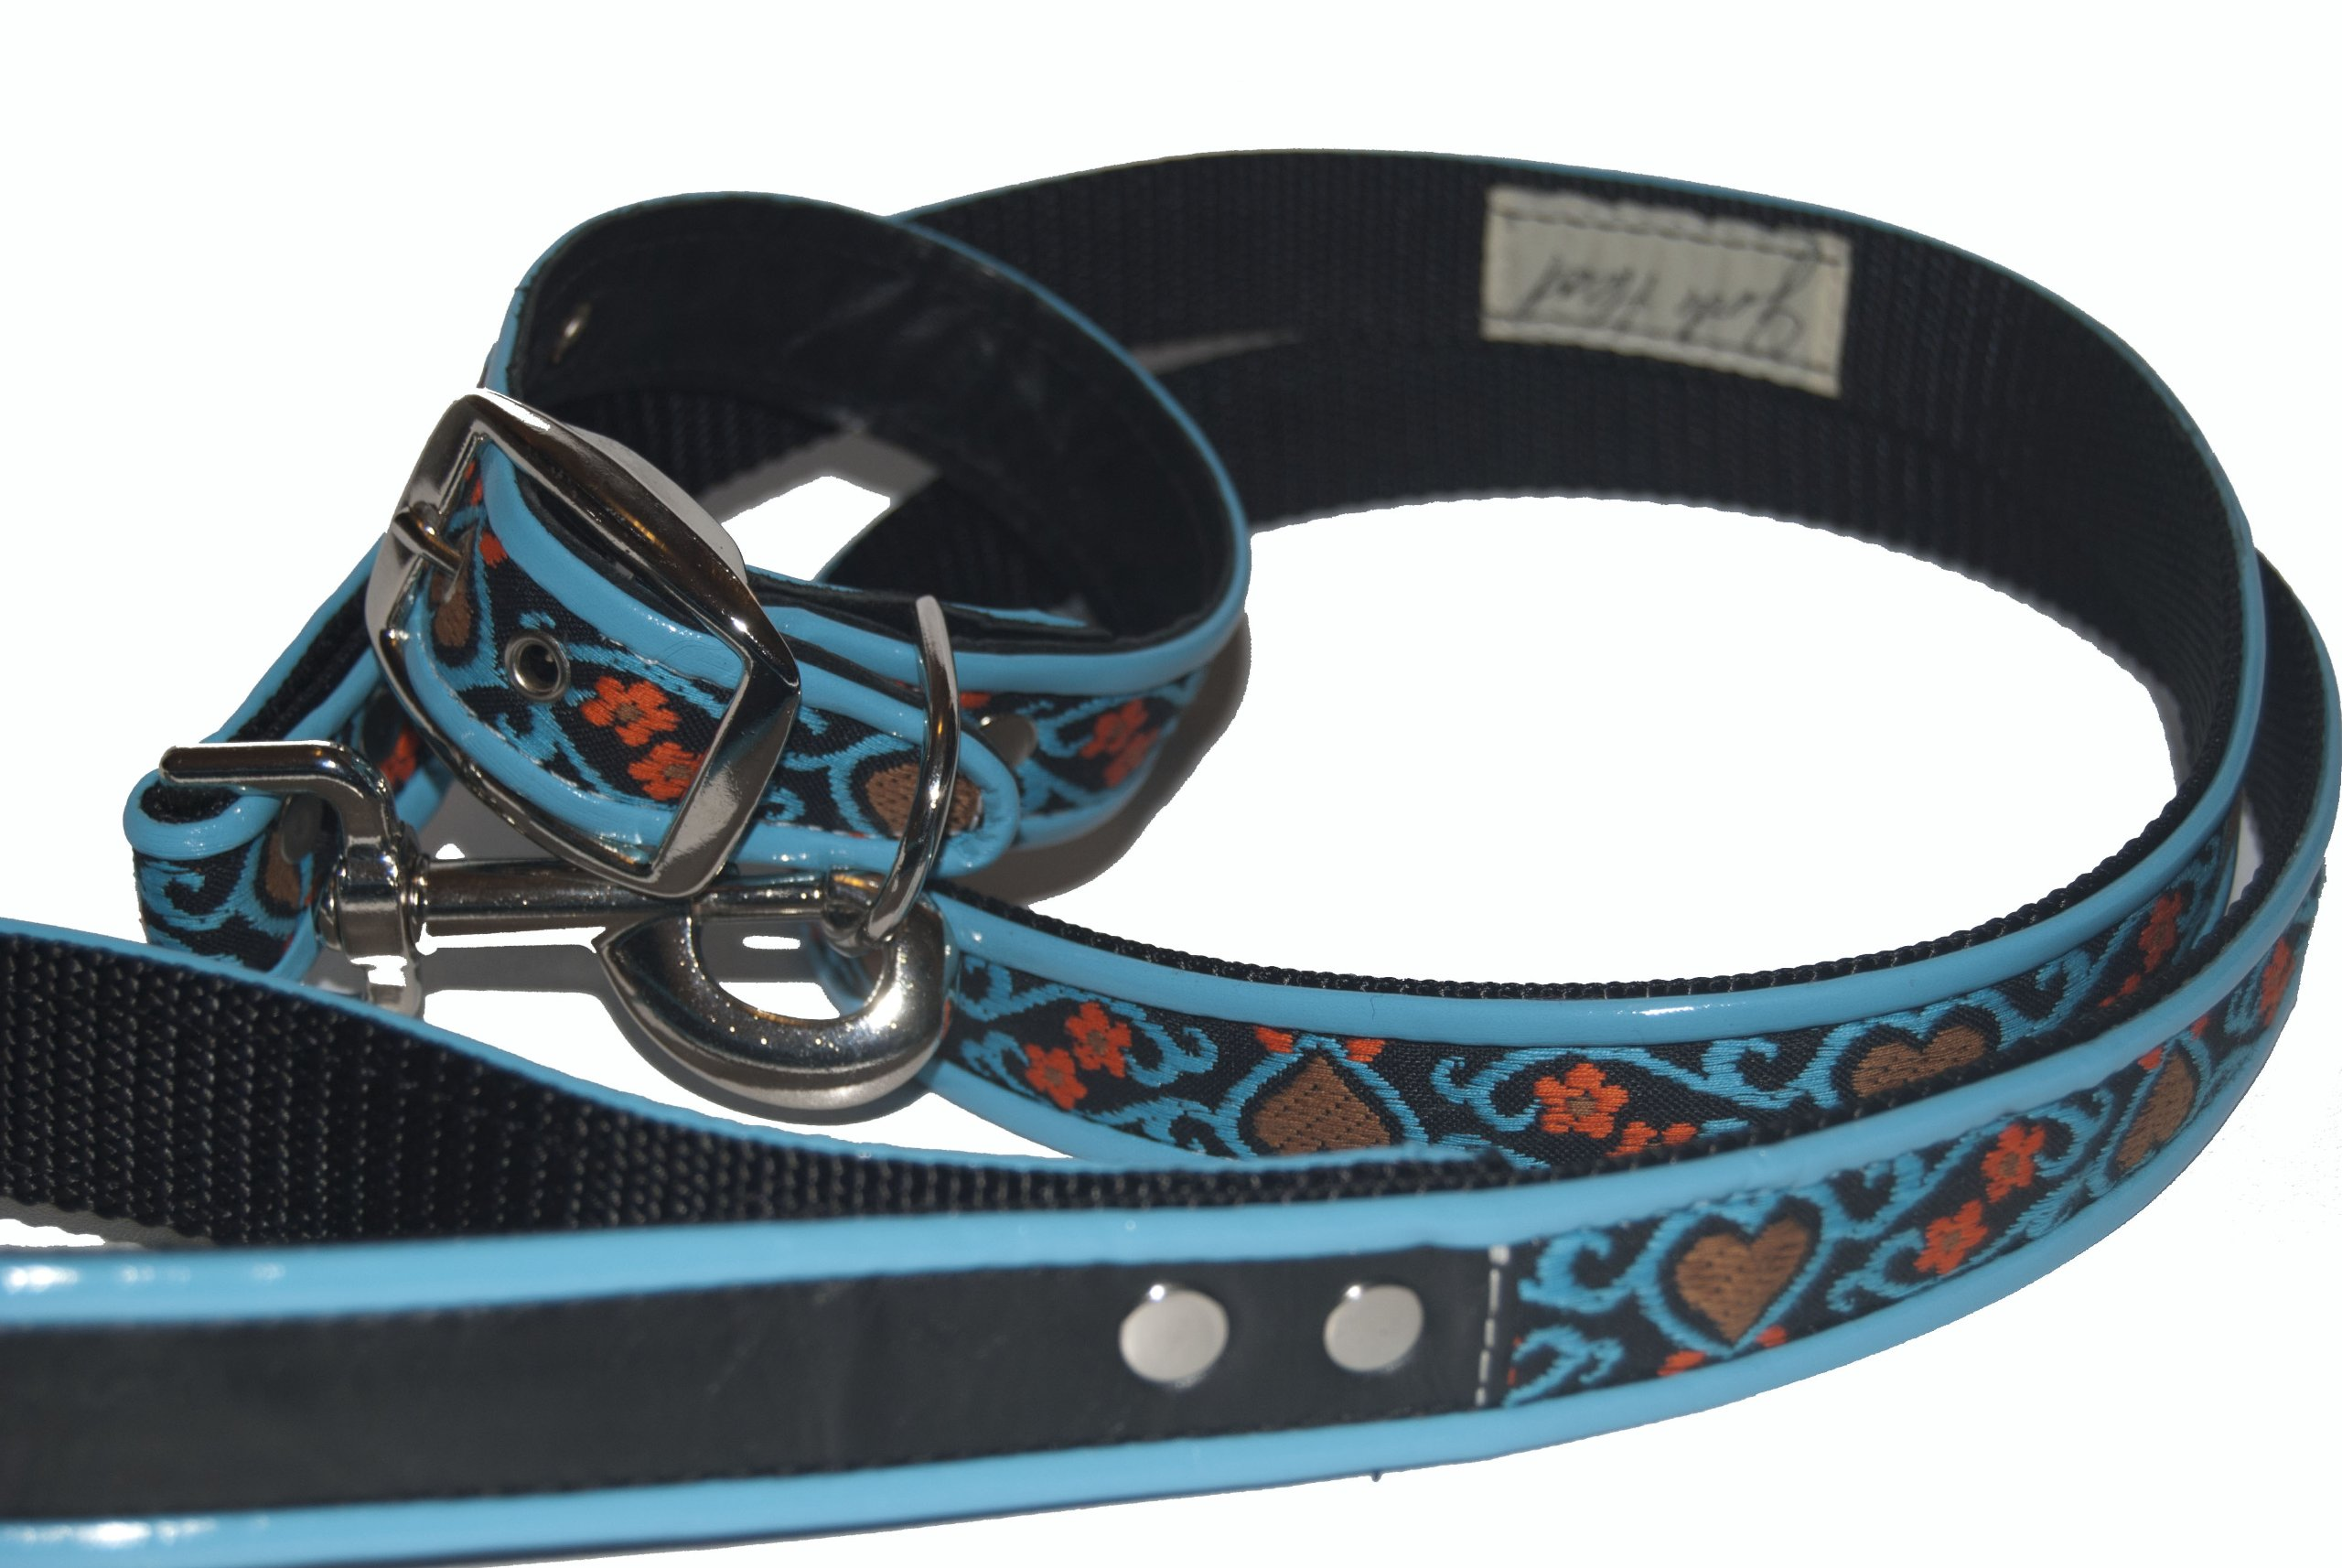 Jodi Head's RJ Cash Petwear Brocade Blue Hearts Dog Collar and Leash, Large, Black with Blue, Red and Blue Binding